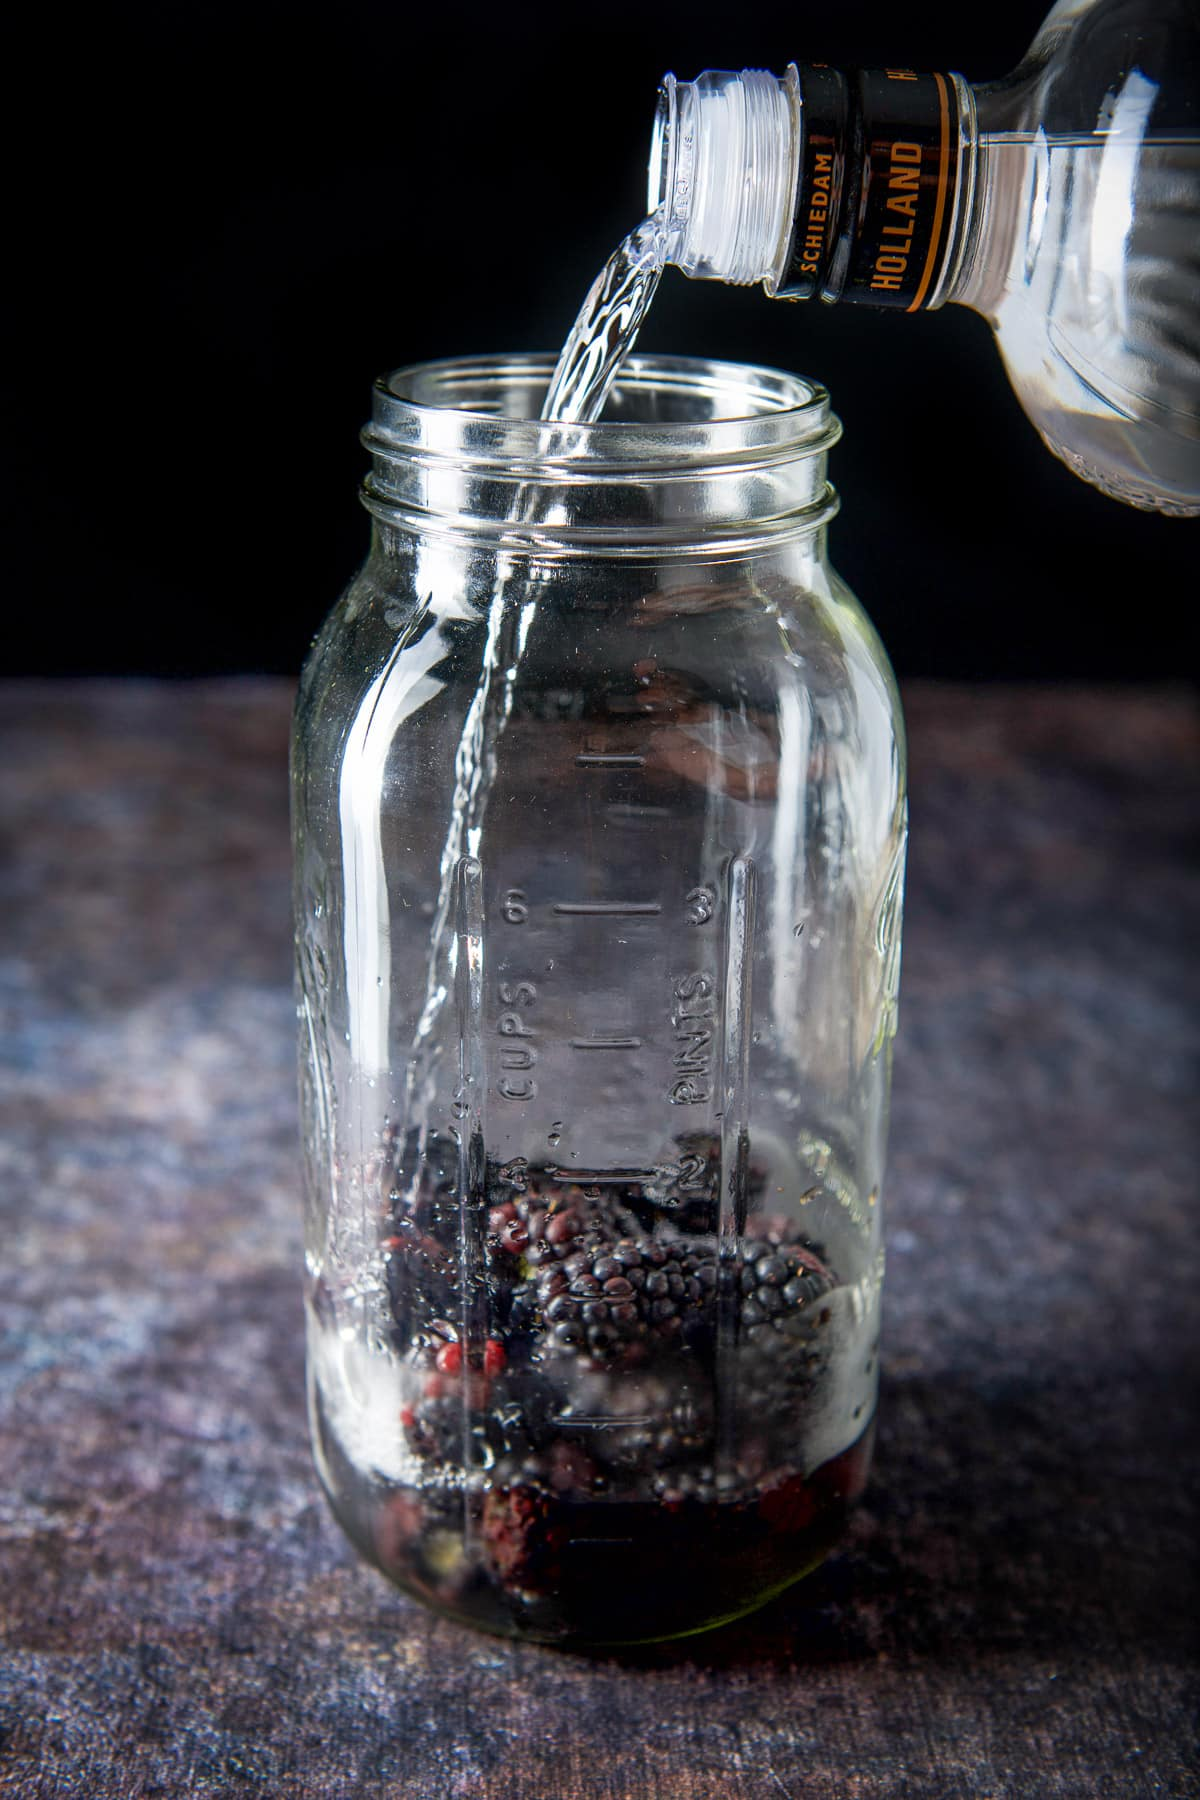 Vodka being poured into the jar of blackberries